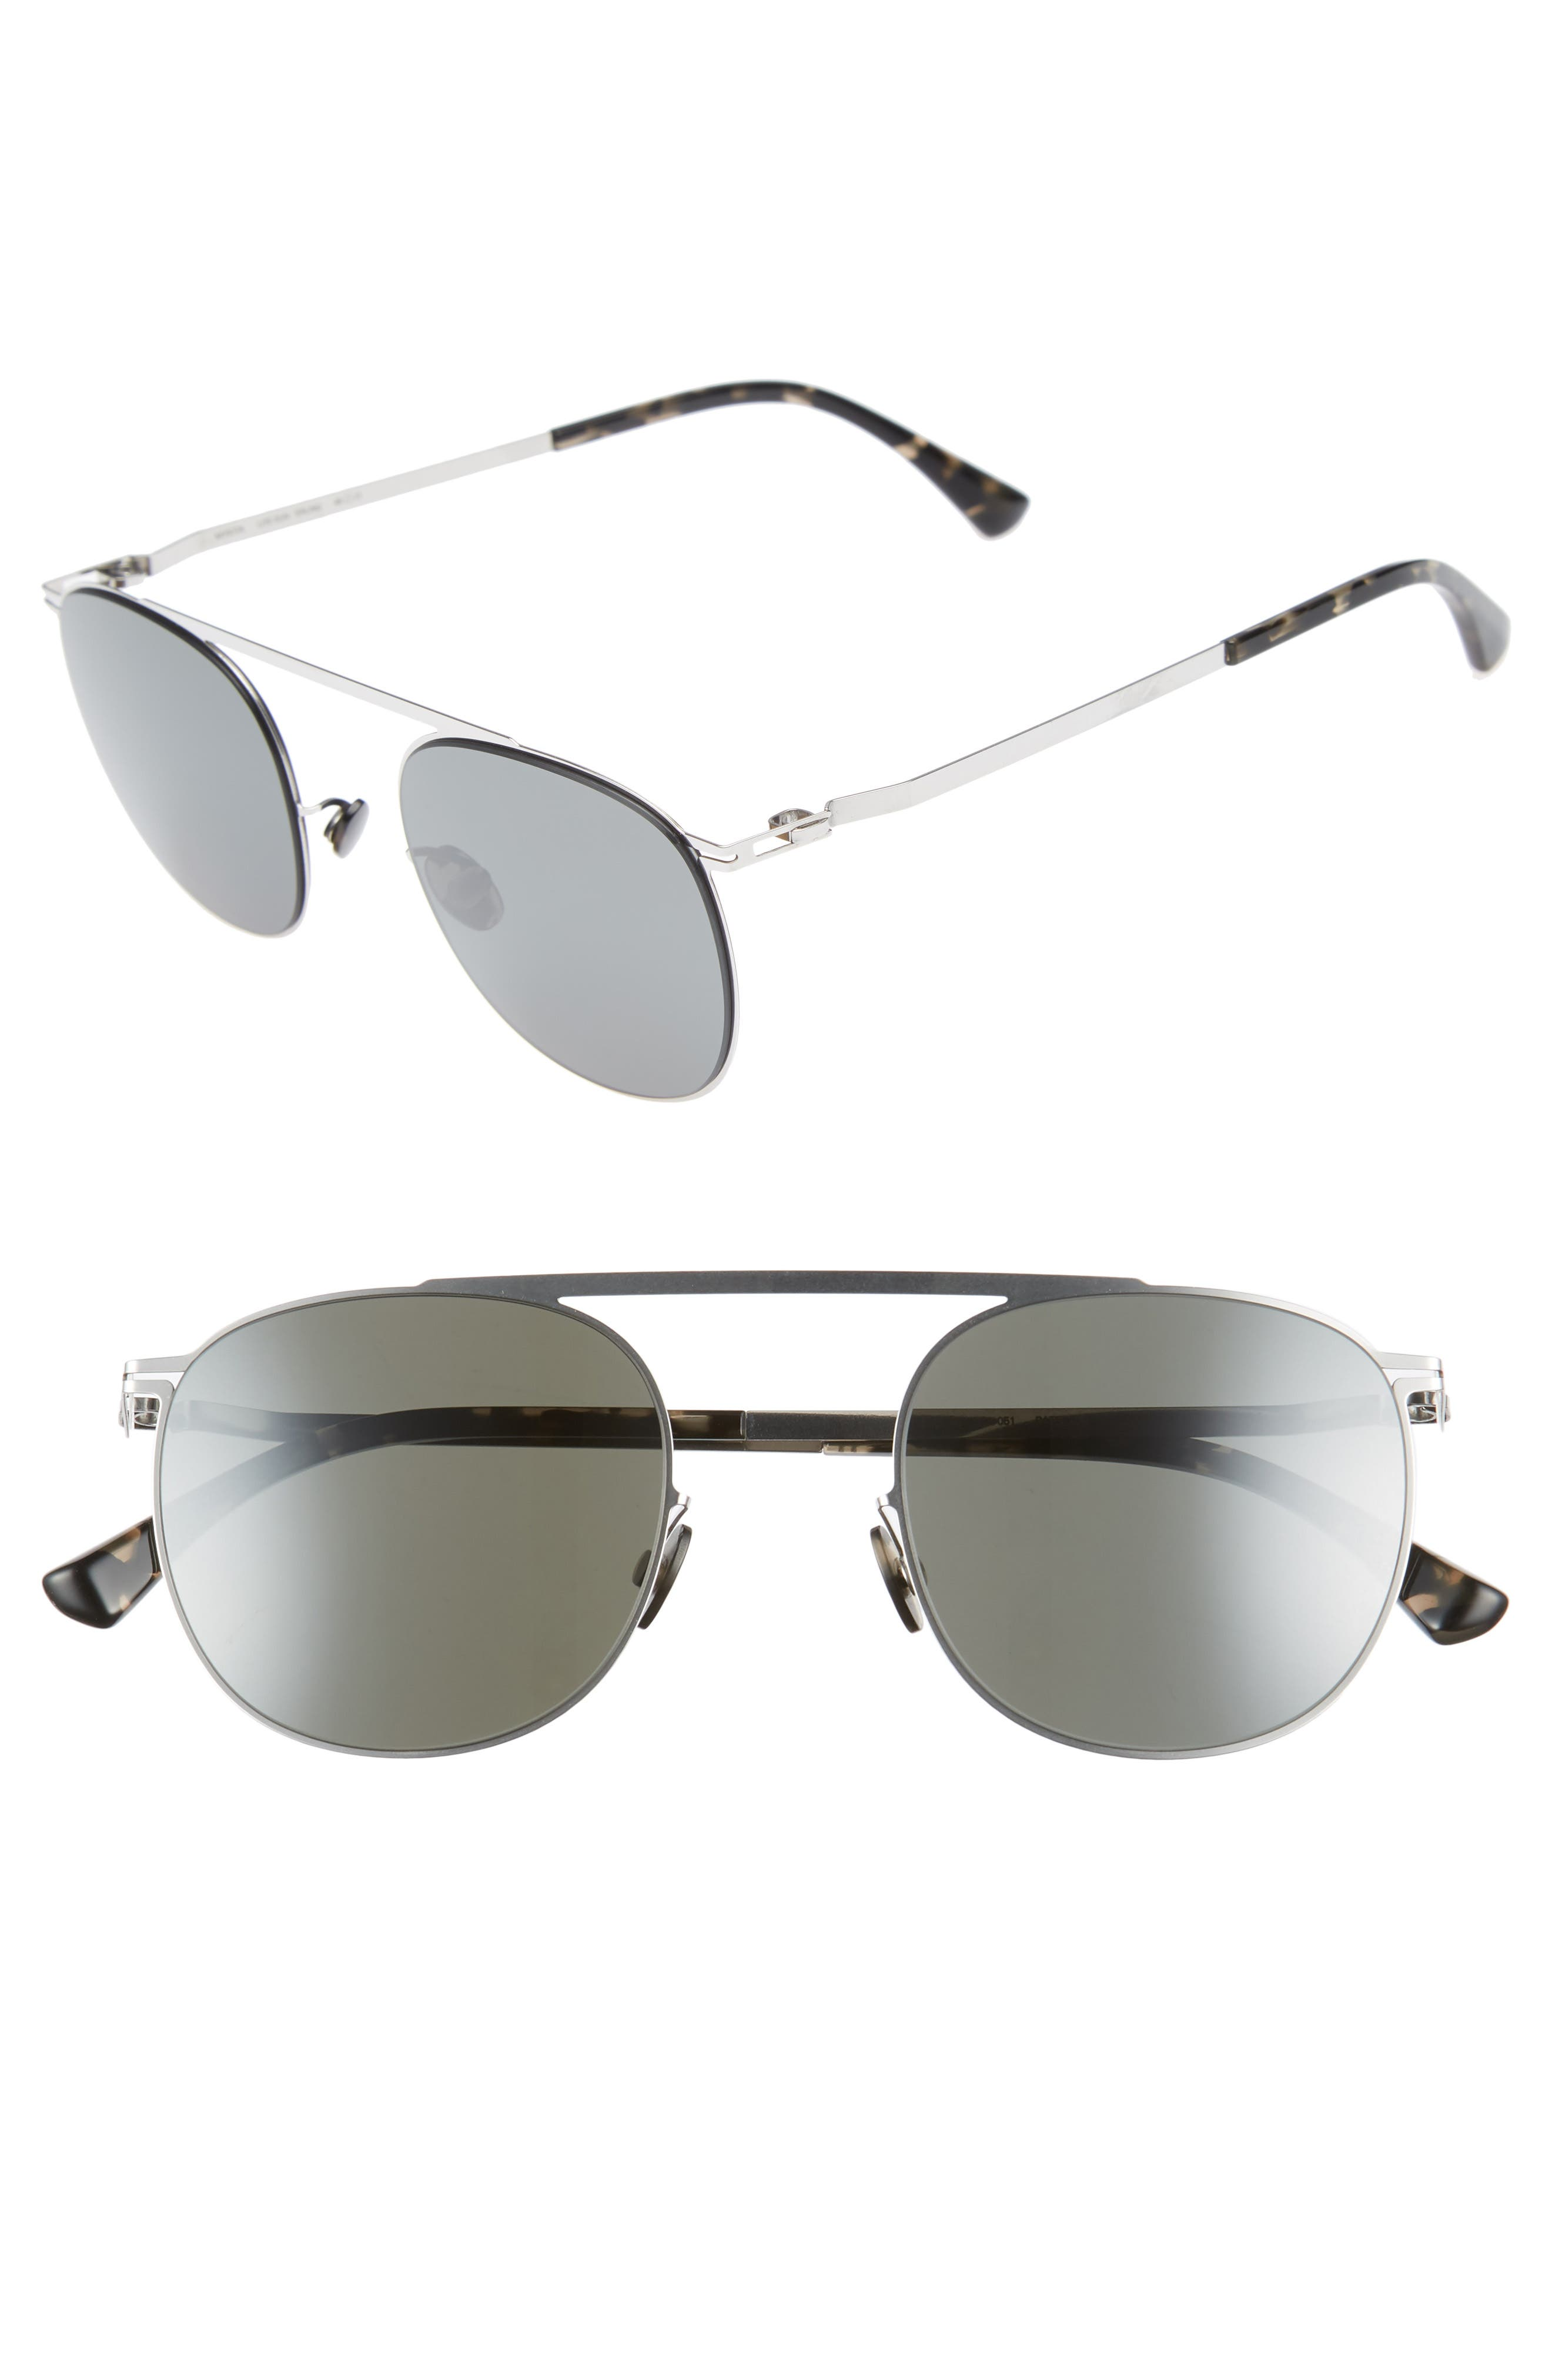 Erling 48mm Mirrored Sunglasses,                             Main thumbnail 1, color,                             Shiny Silver